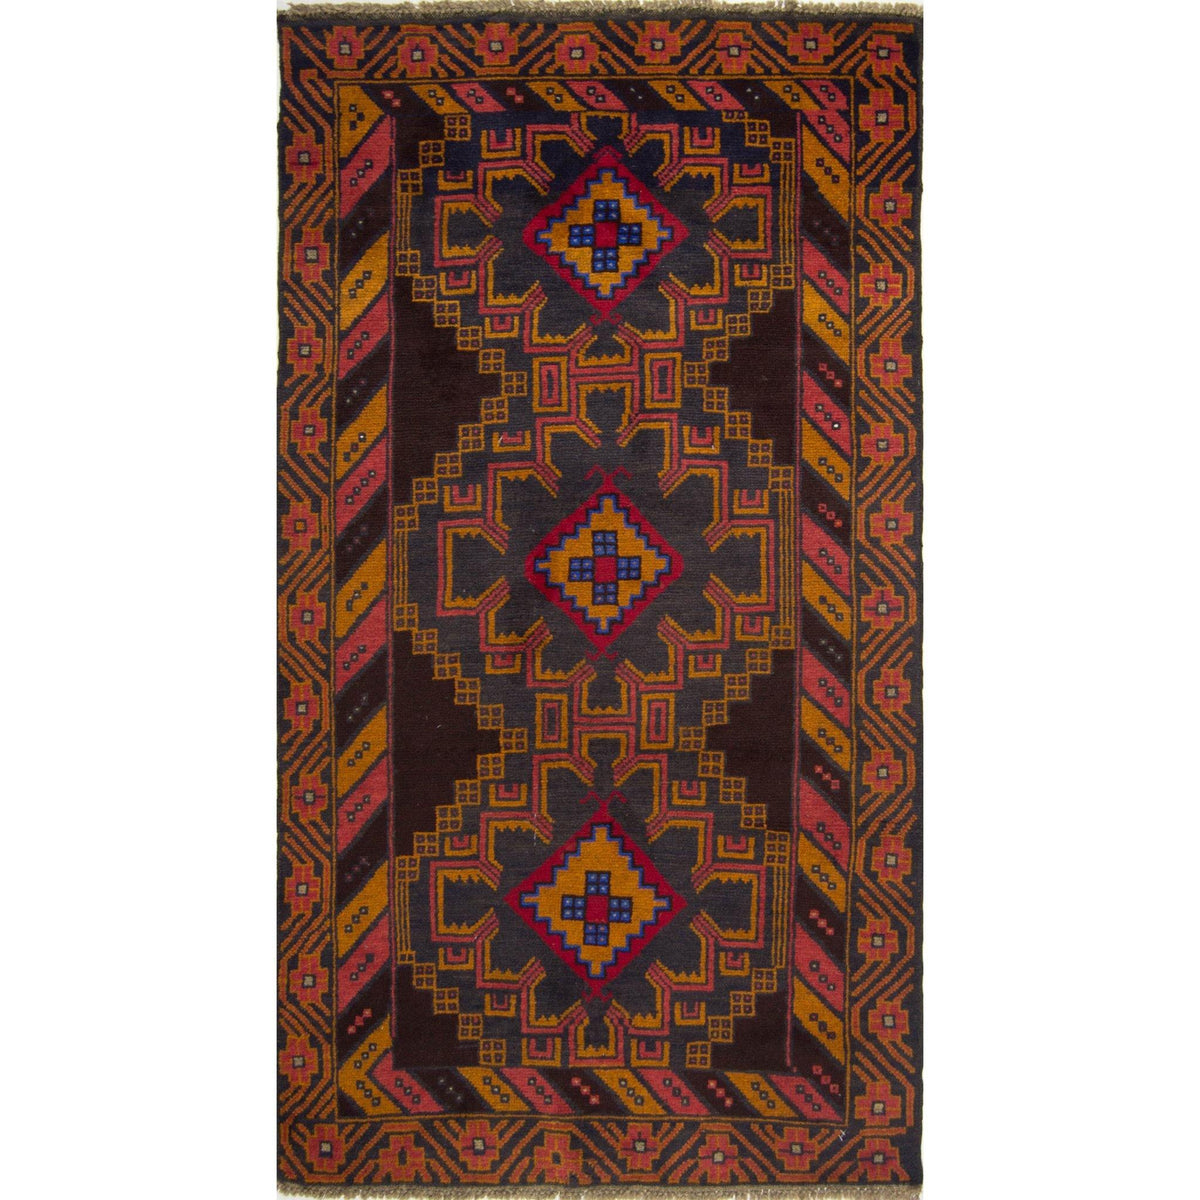 Hand-knotted Wool Baluchi Rug 104cm x 190cm Persian-Rug | House-of-Haghi | NewMarket | Auckland | NZ | Handmade Persian Rugs | Hand Knotted Persian Rugs